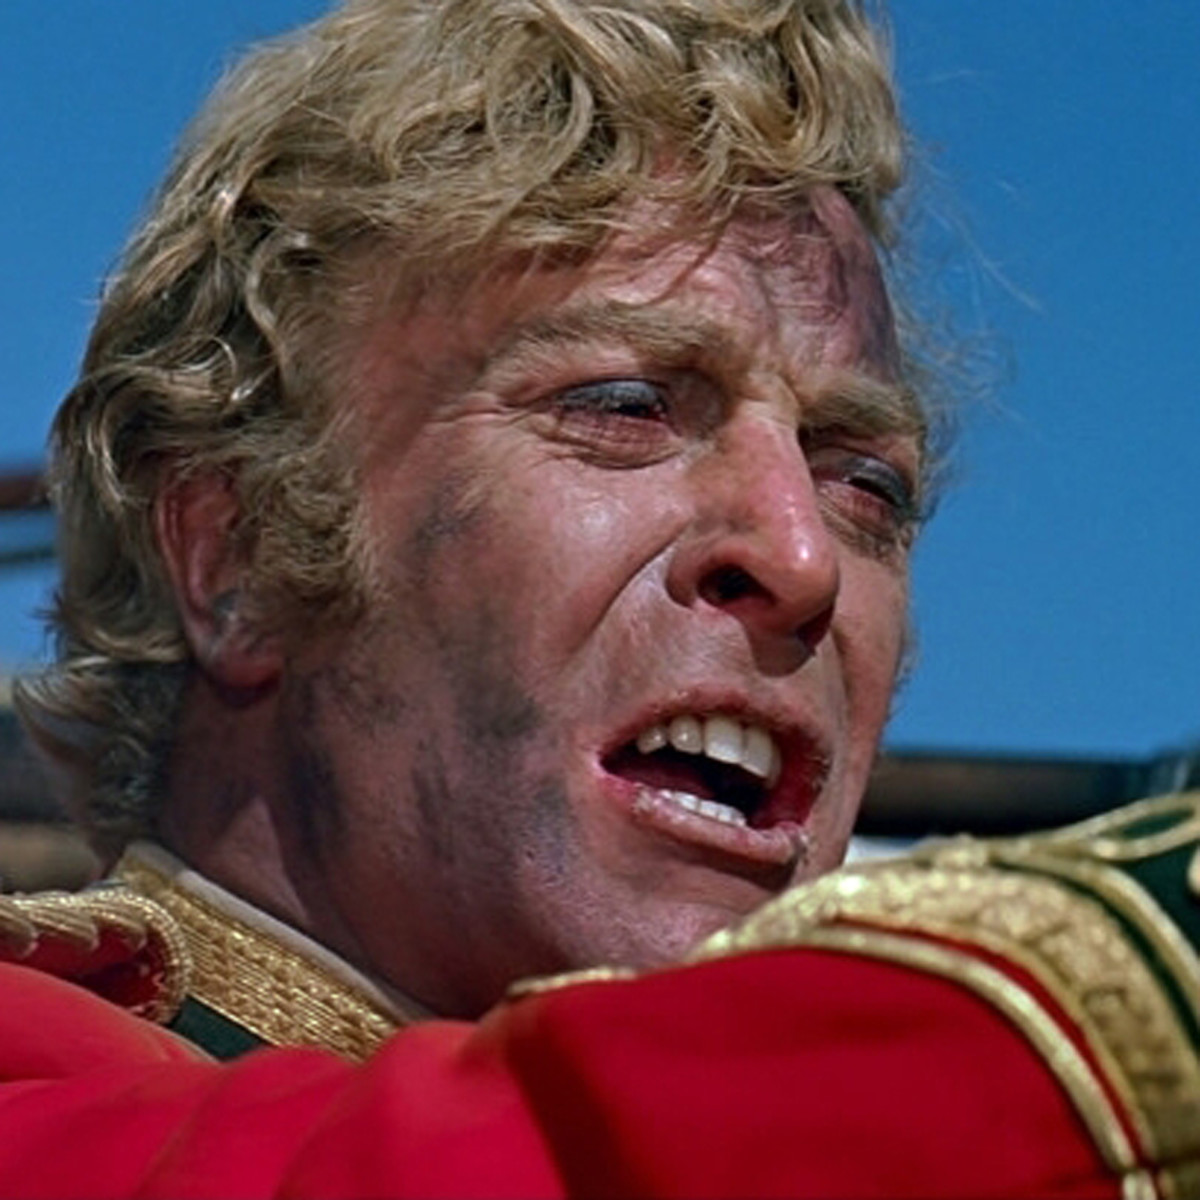 Michael Caine in his first starring role